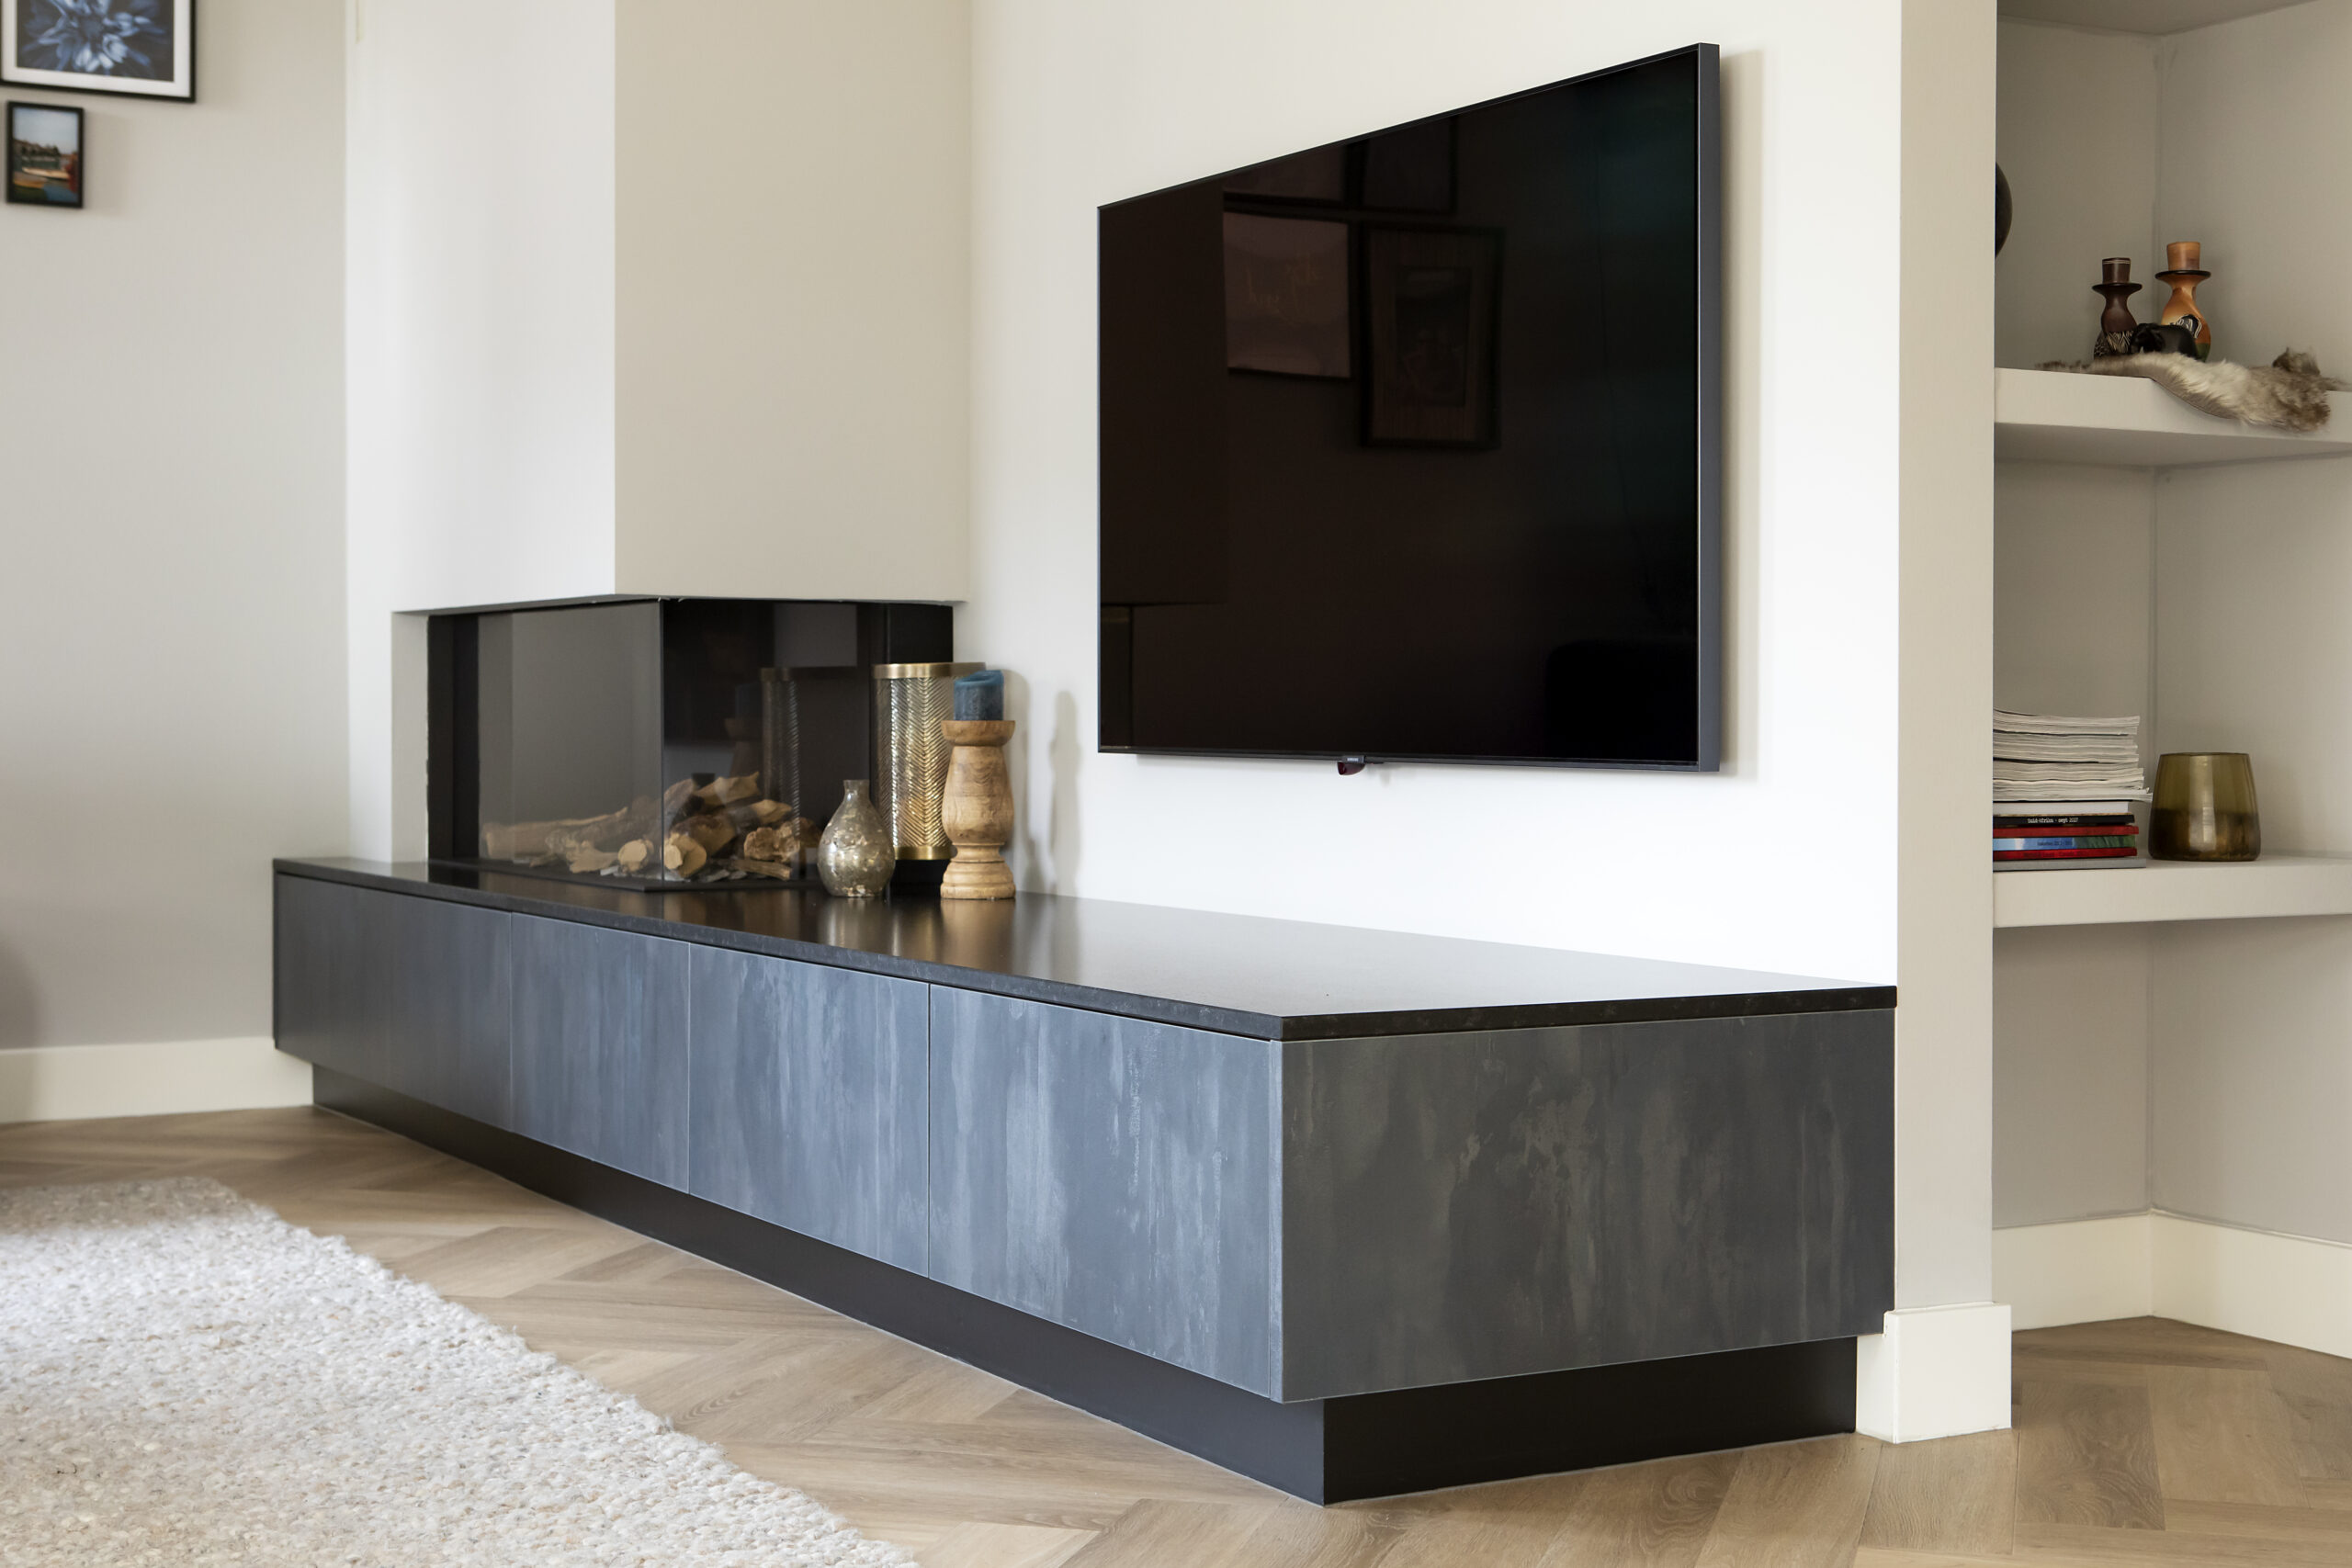 TV meubel metallic decoratief plaatmateriaal